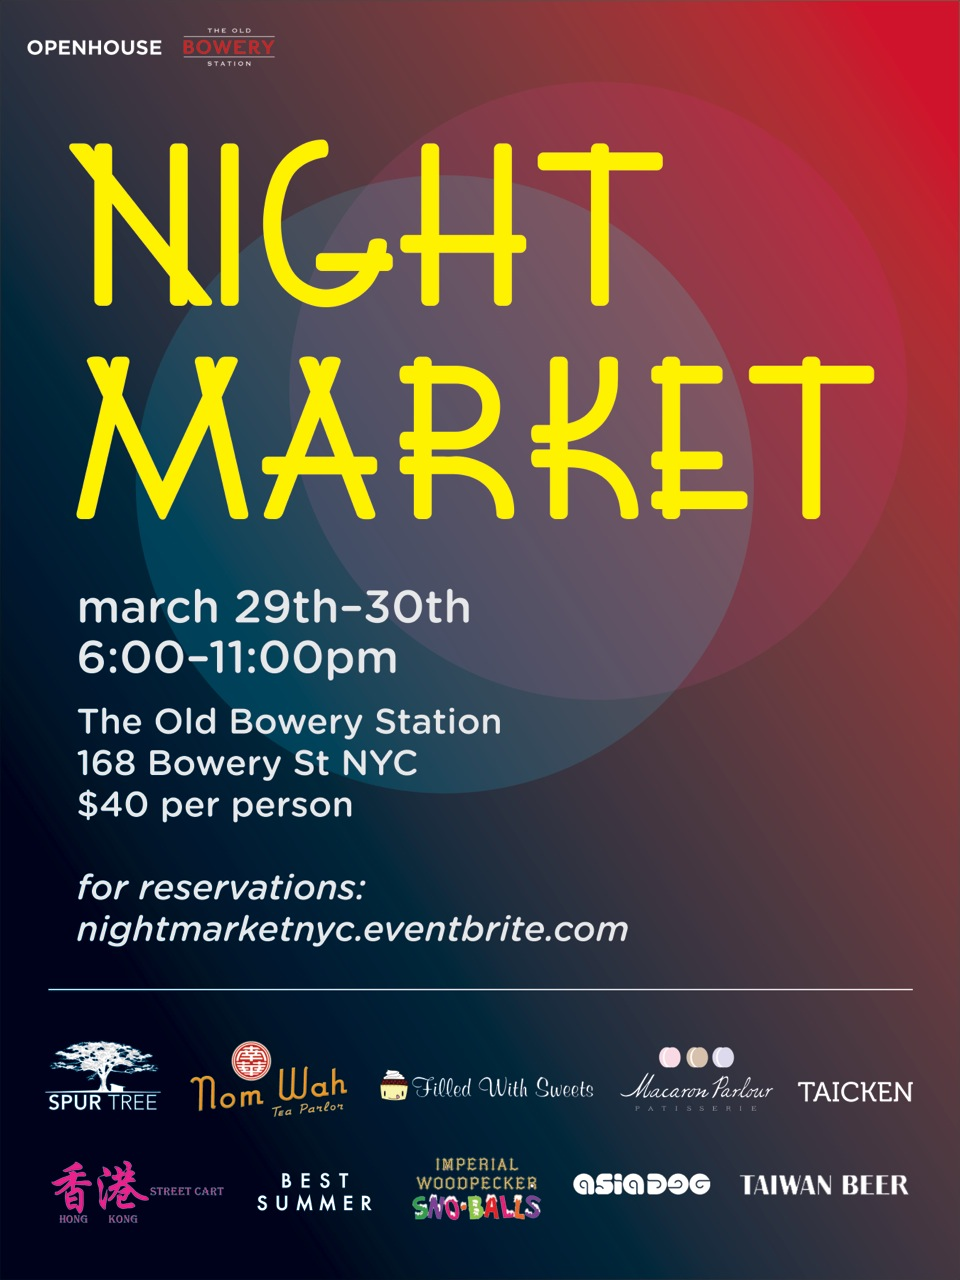 nightmarket_poster-01.jpeg